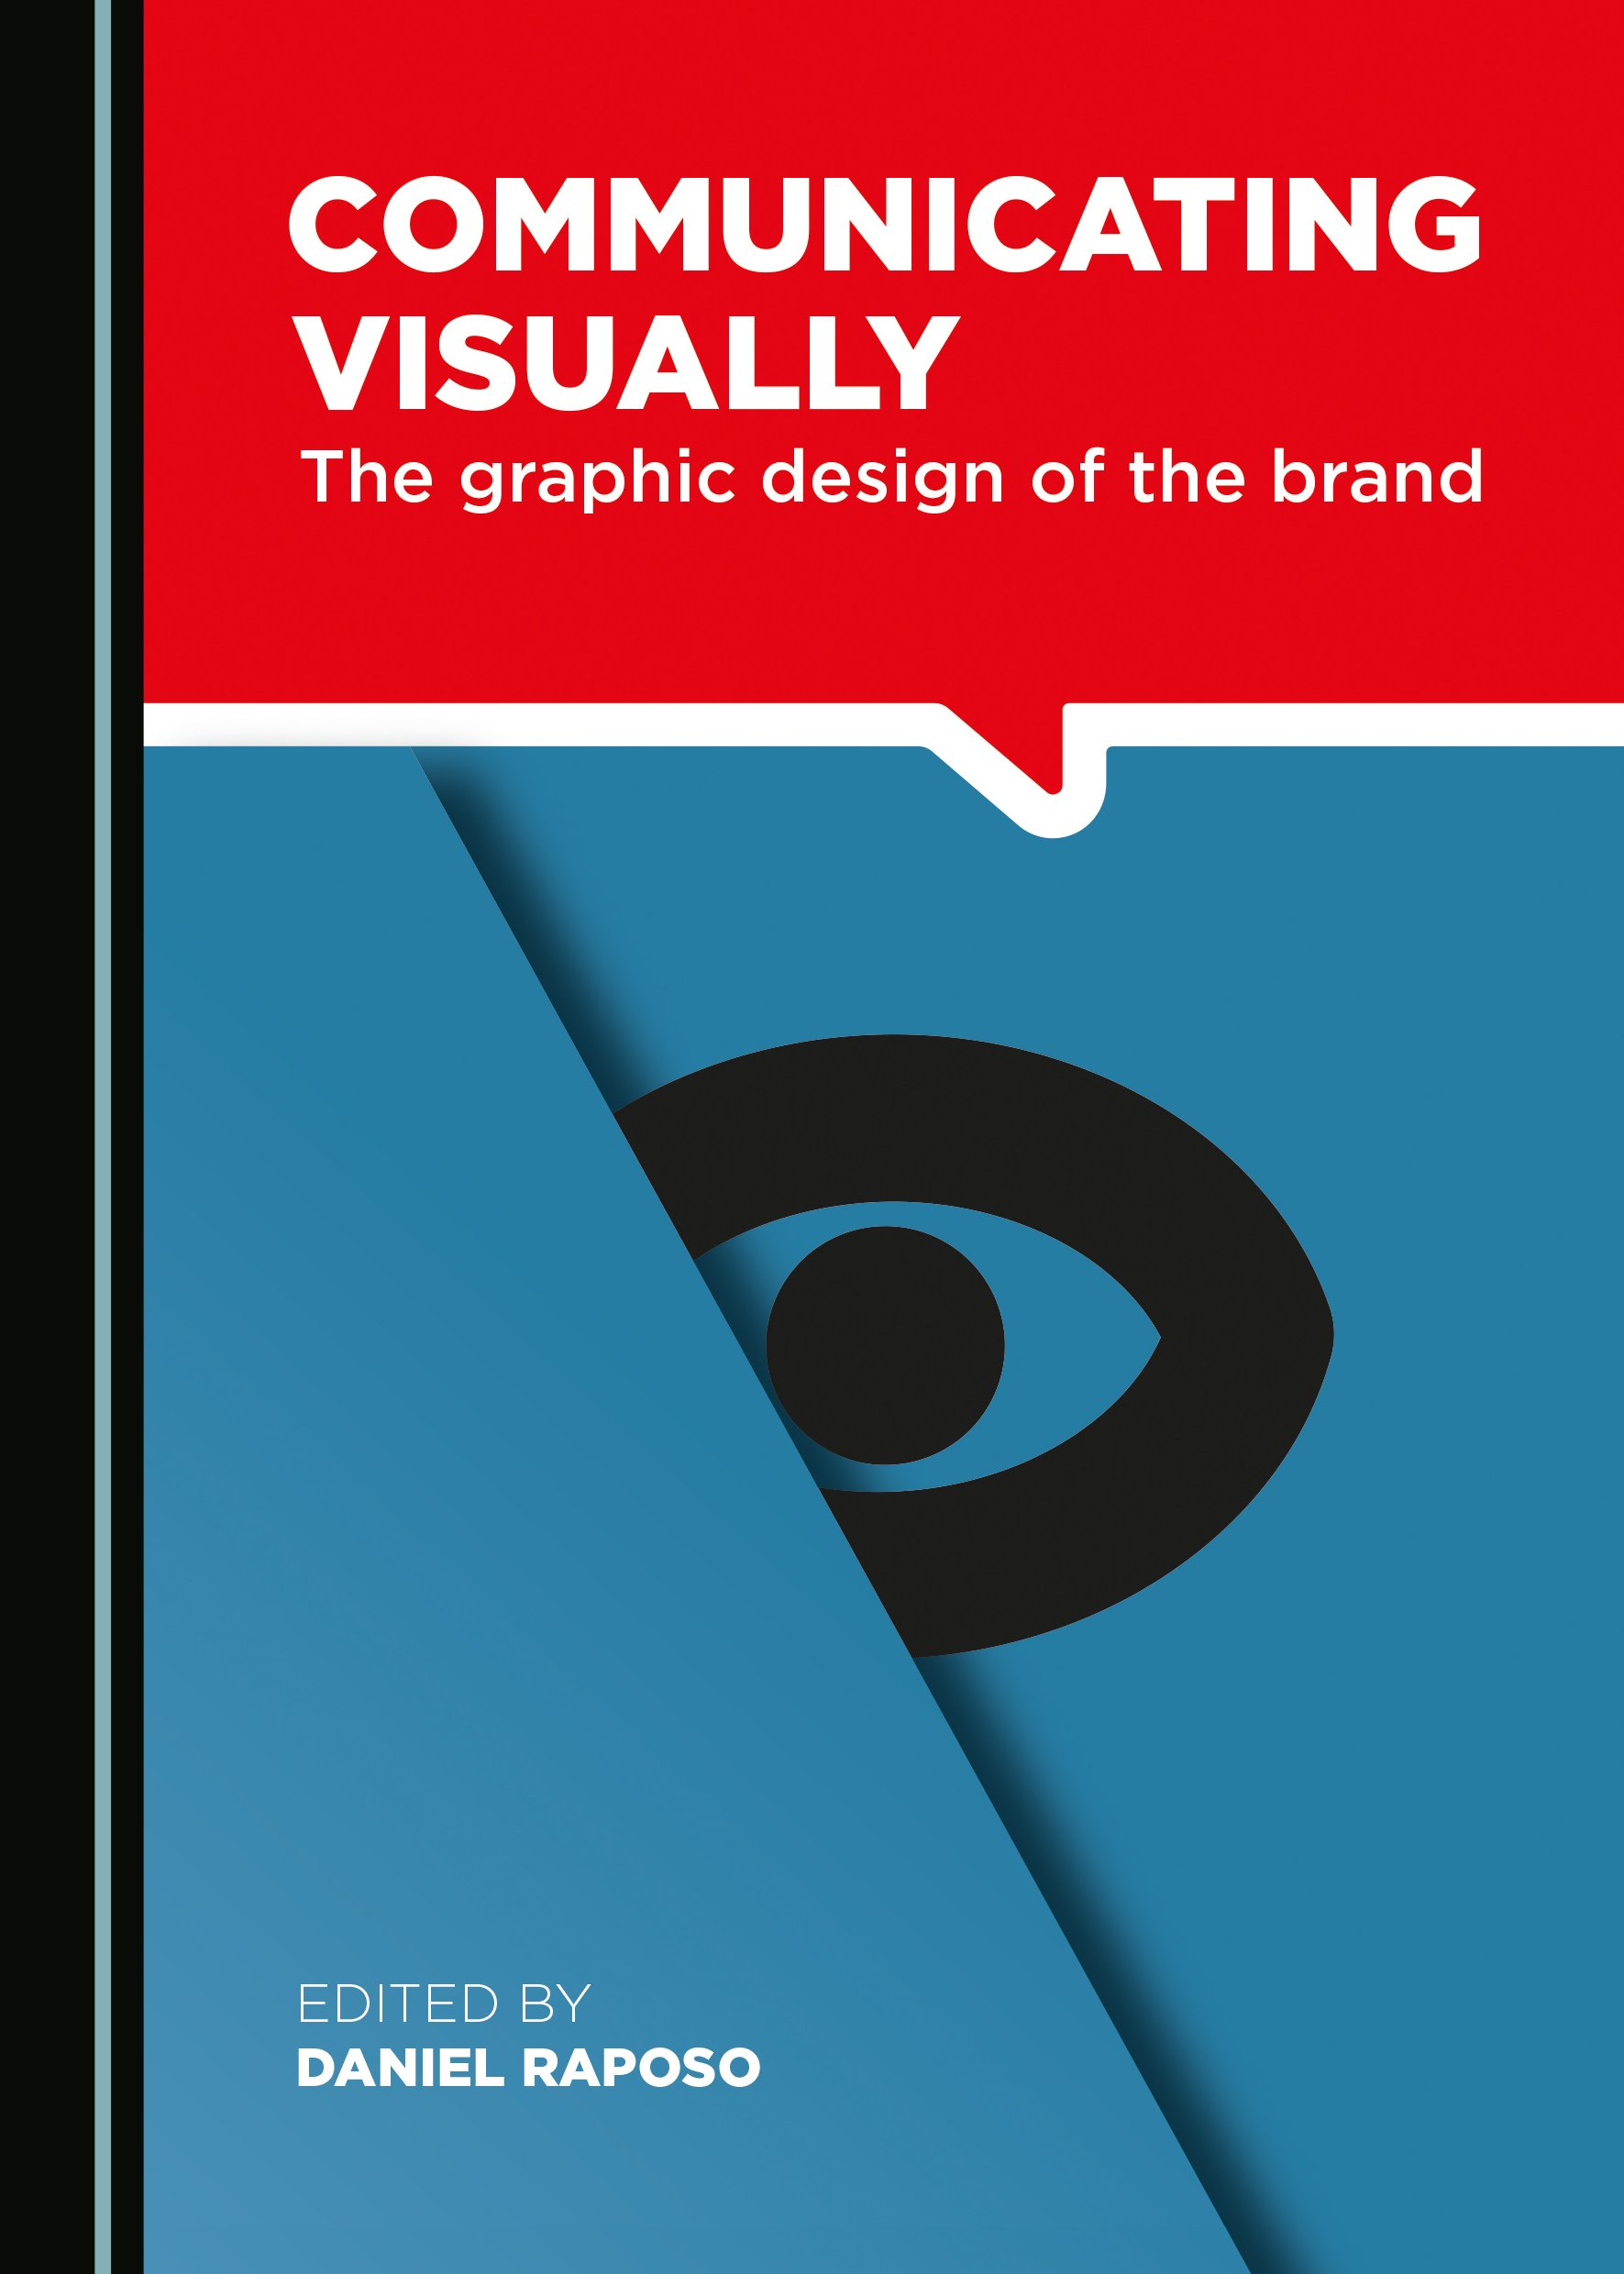 Communicating Visually: The Graphic Design of the Brand